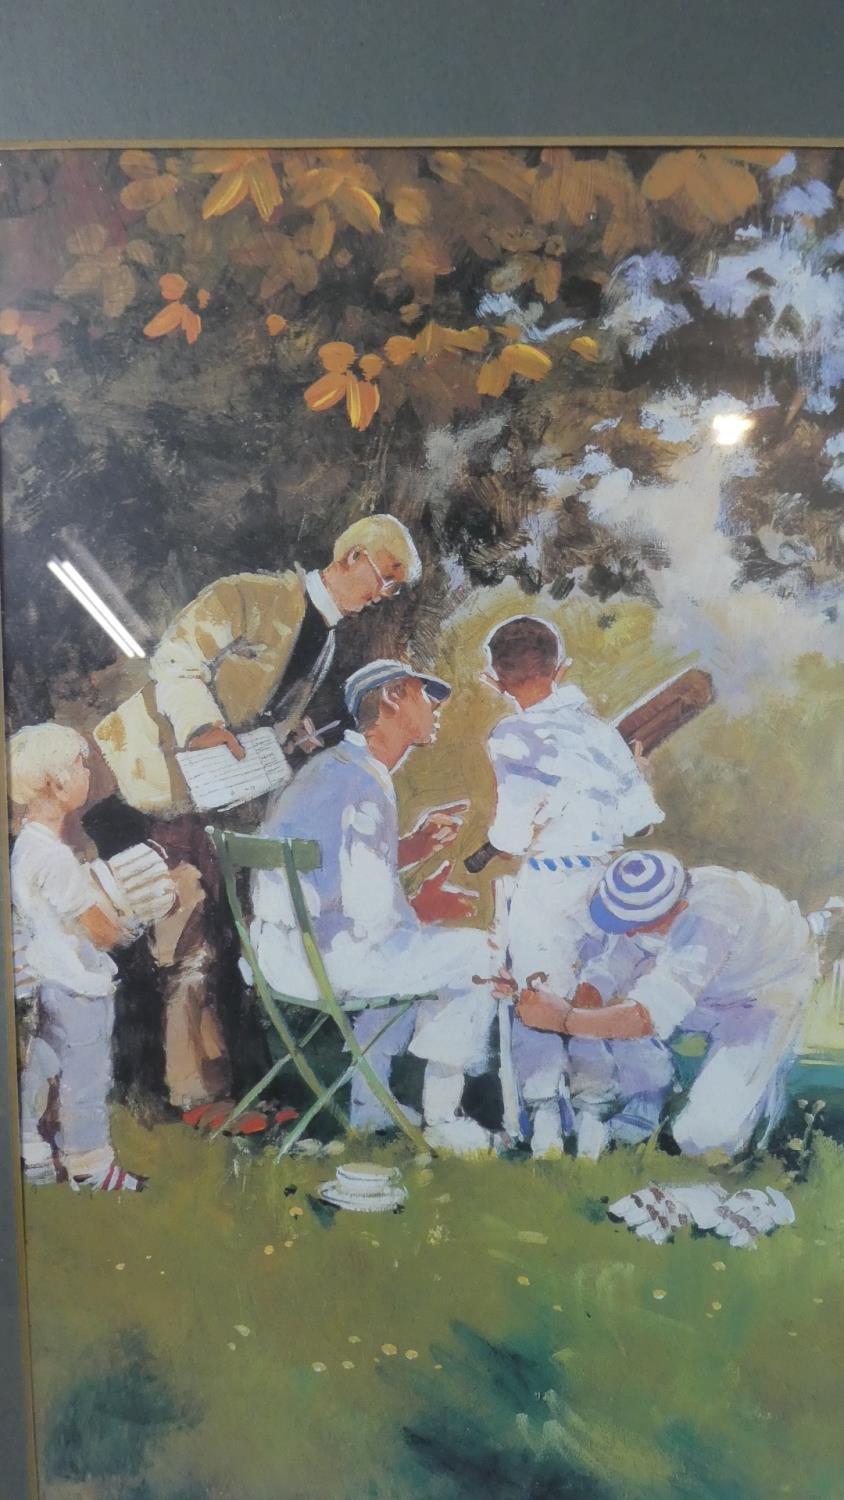 Lot 243 - A Framed Print Depicting Village Cricket Match, 48cm Wide